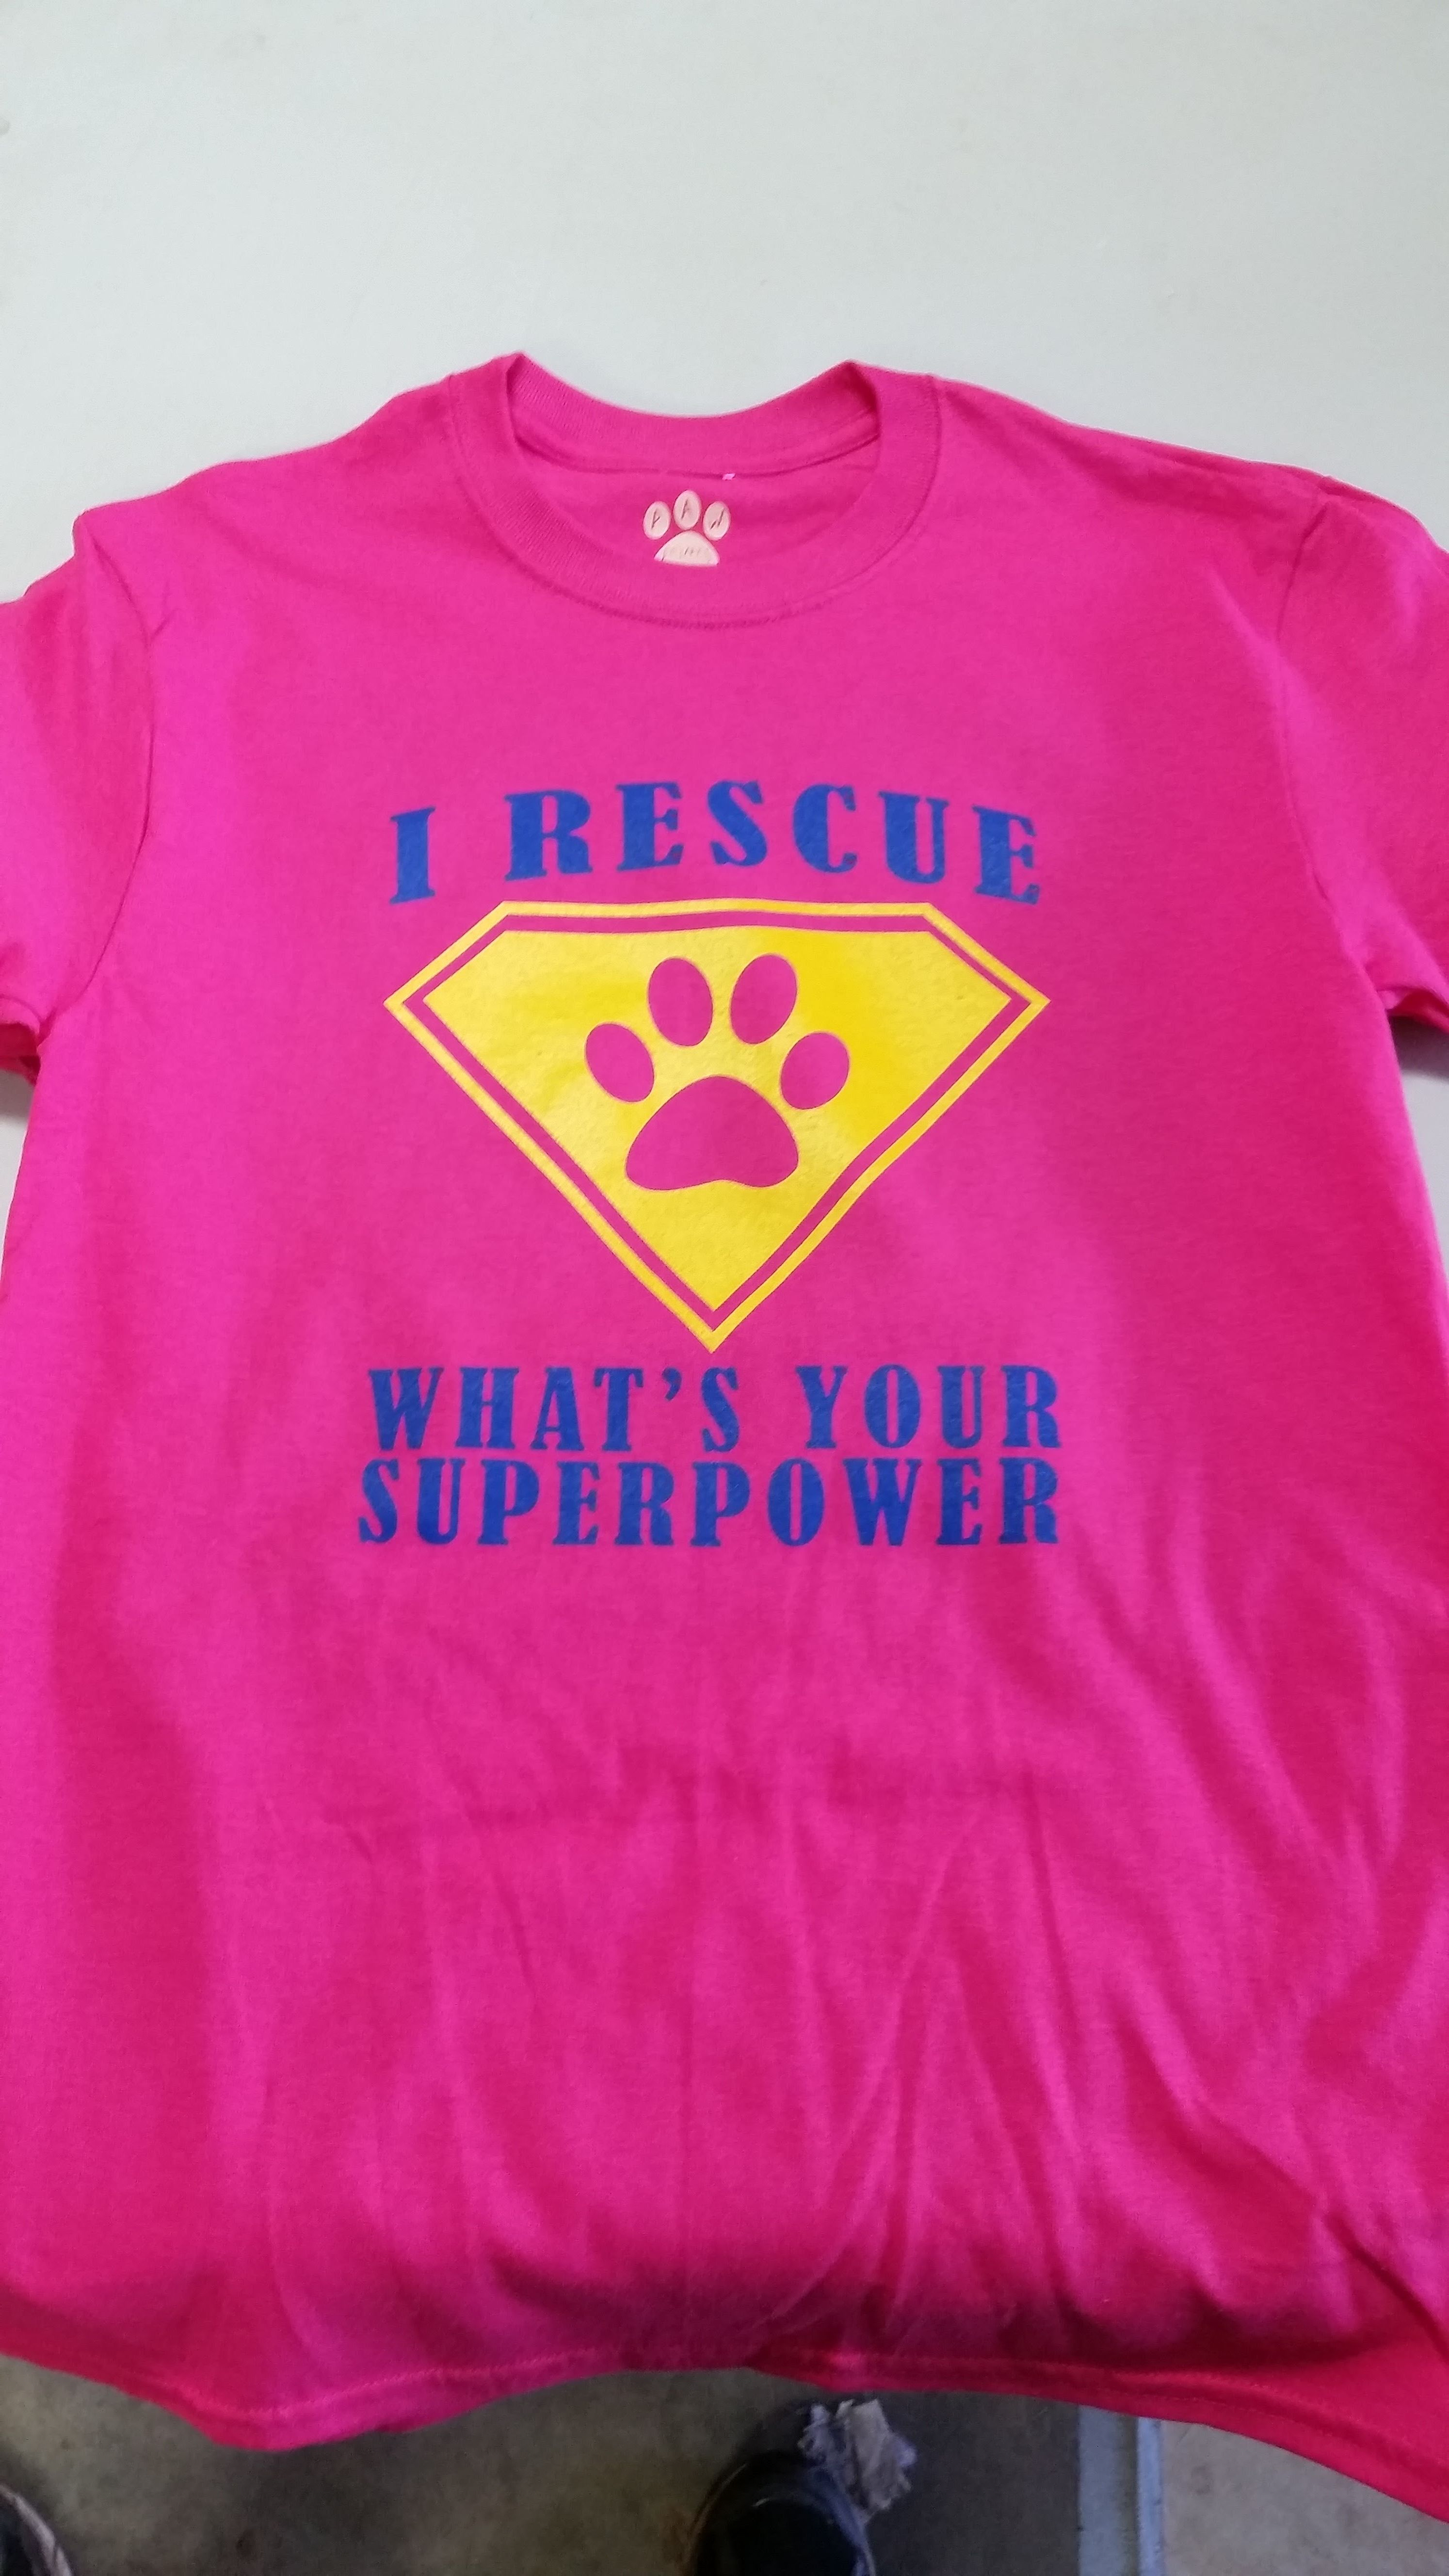 This is the women's version of the Rescue Rangers logo that we did.  We love to help out the rescues!